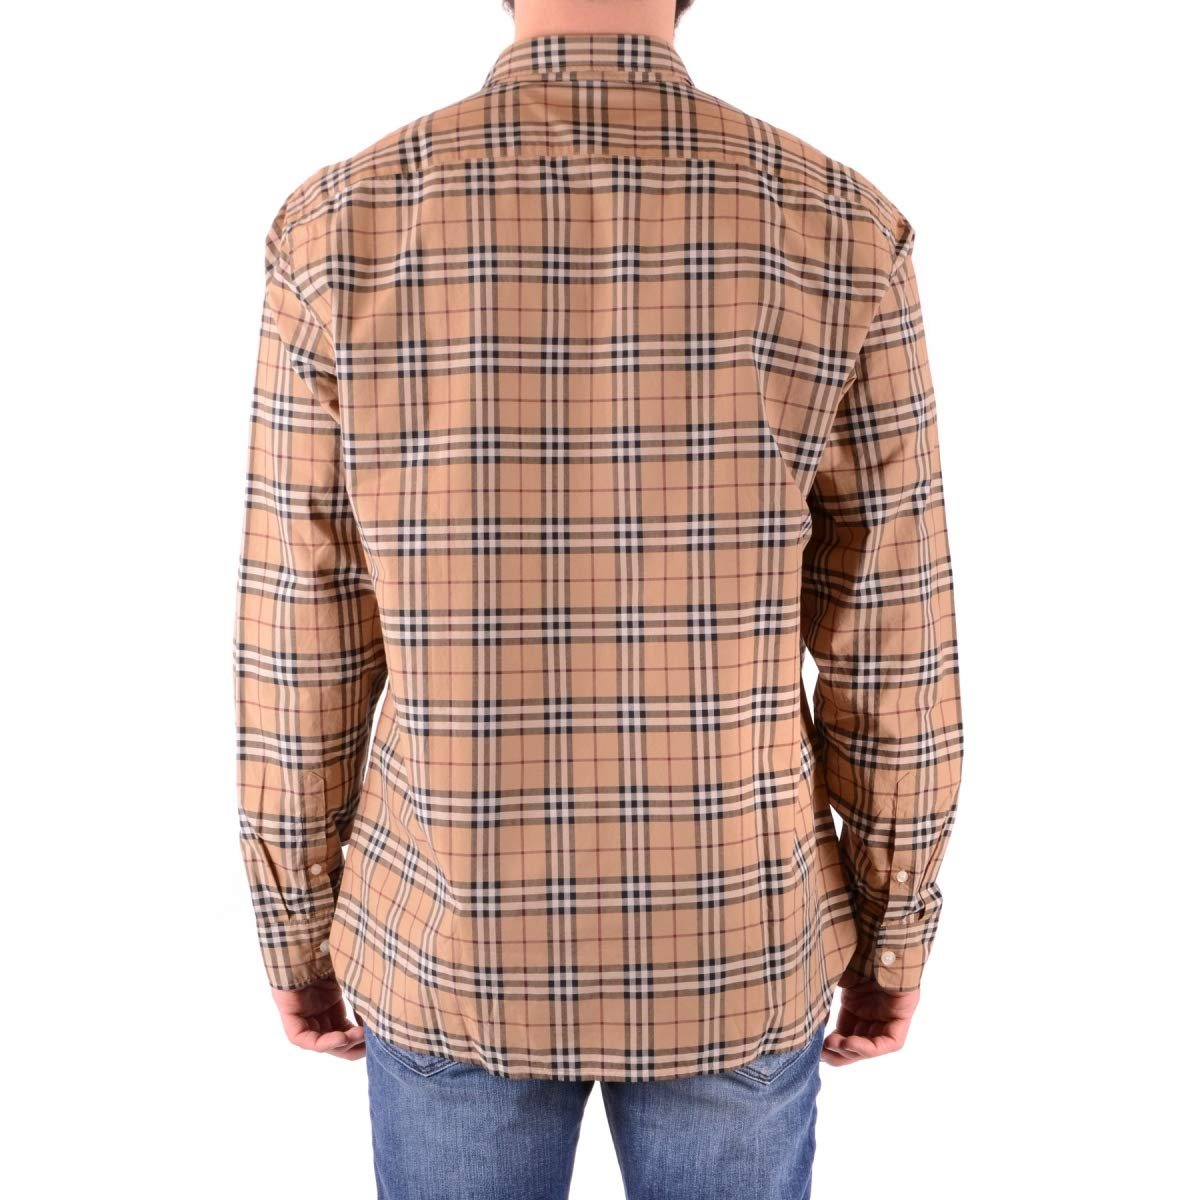 4fea308efb933 Amazon.com: BURBERRY Men's Alexander Camel Check Shirt XXL: Clothing